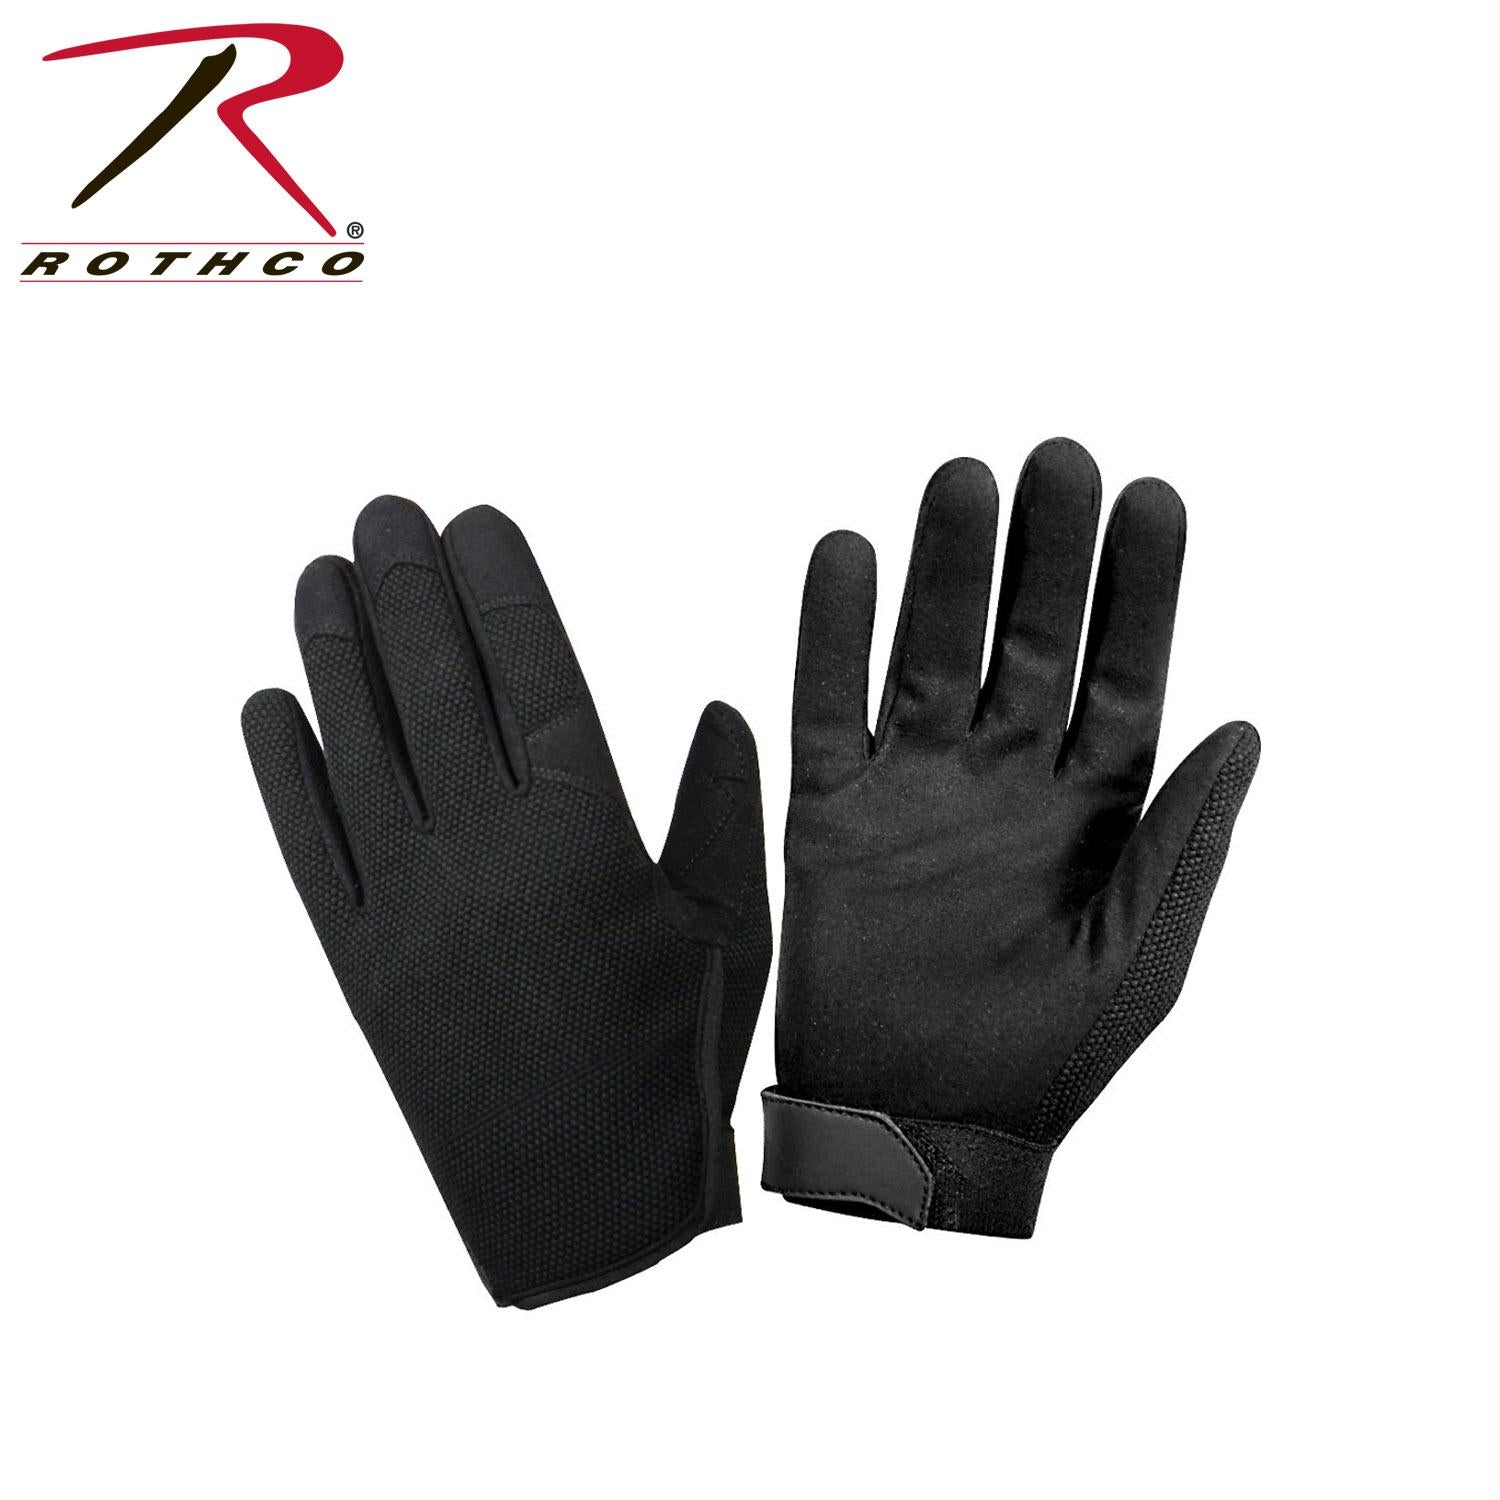 Rothco Ultra-light High Performance Gloves - Black / XL